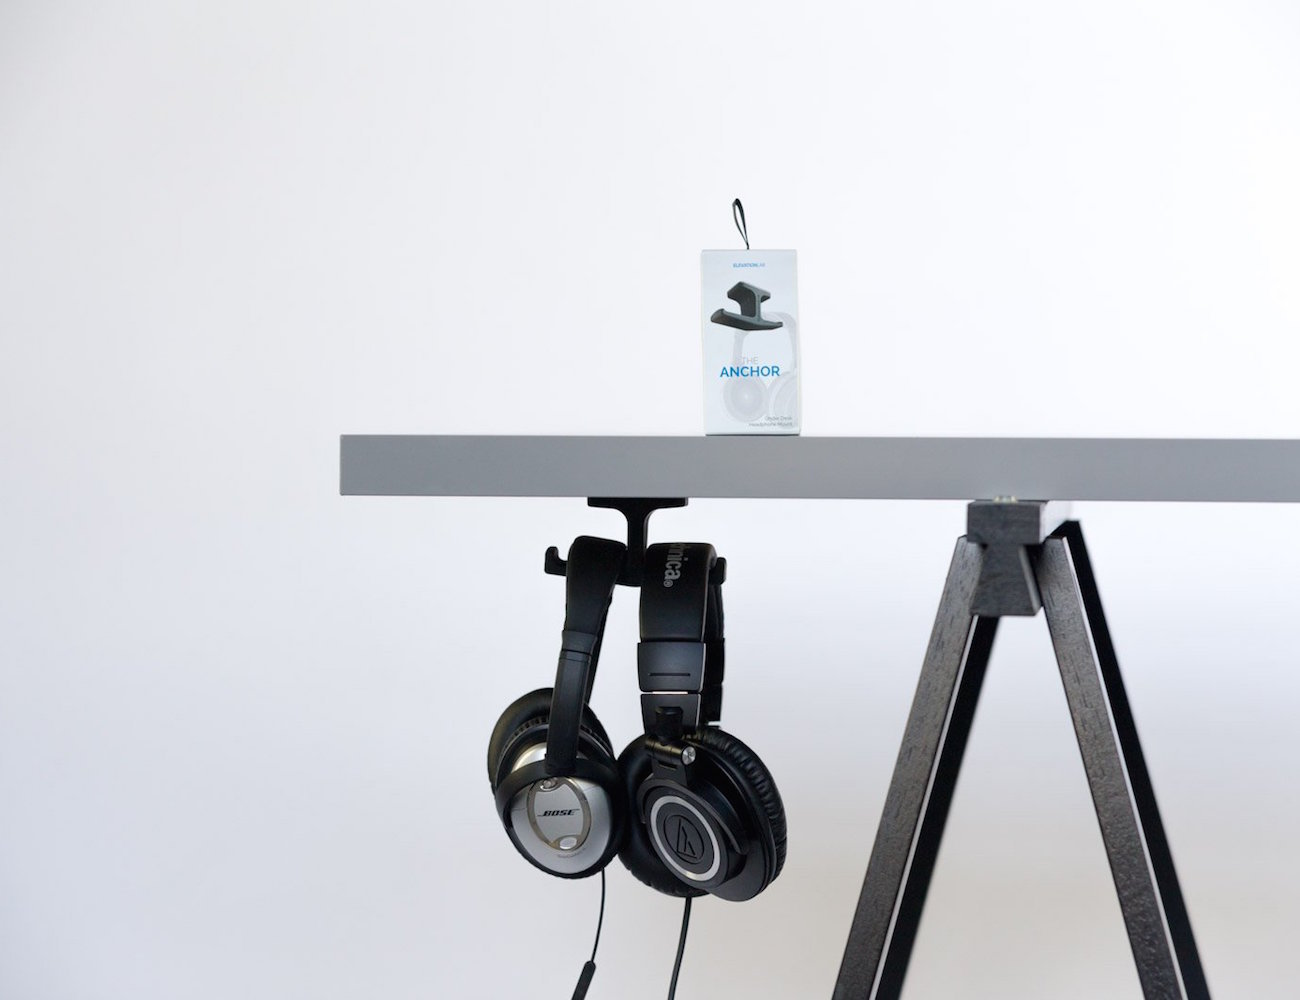 Anchor – The Under Desk Headphone Mount